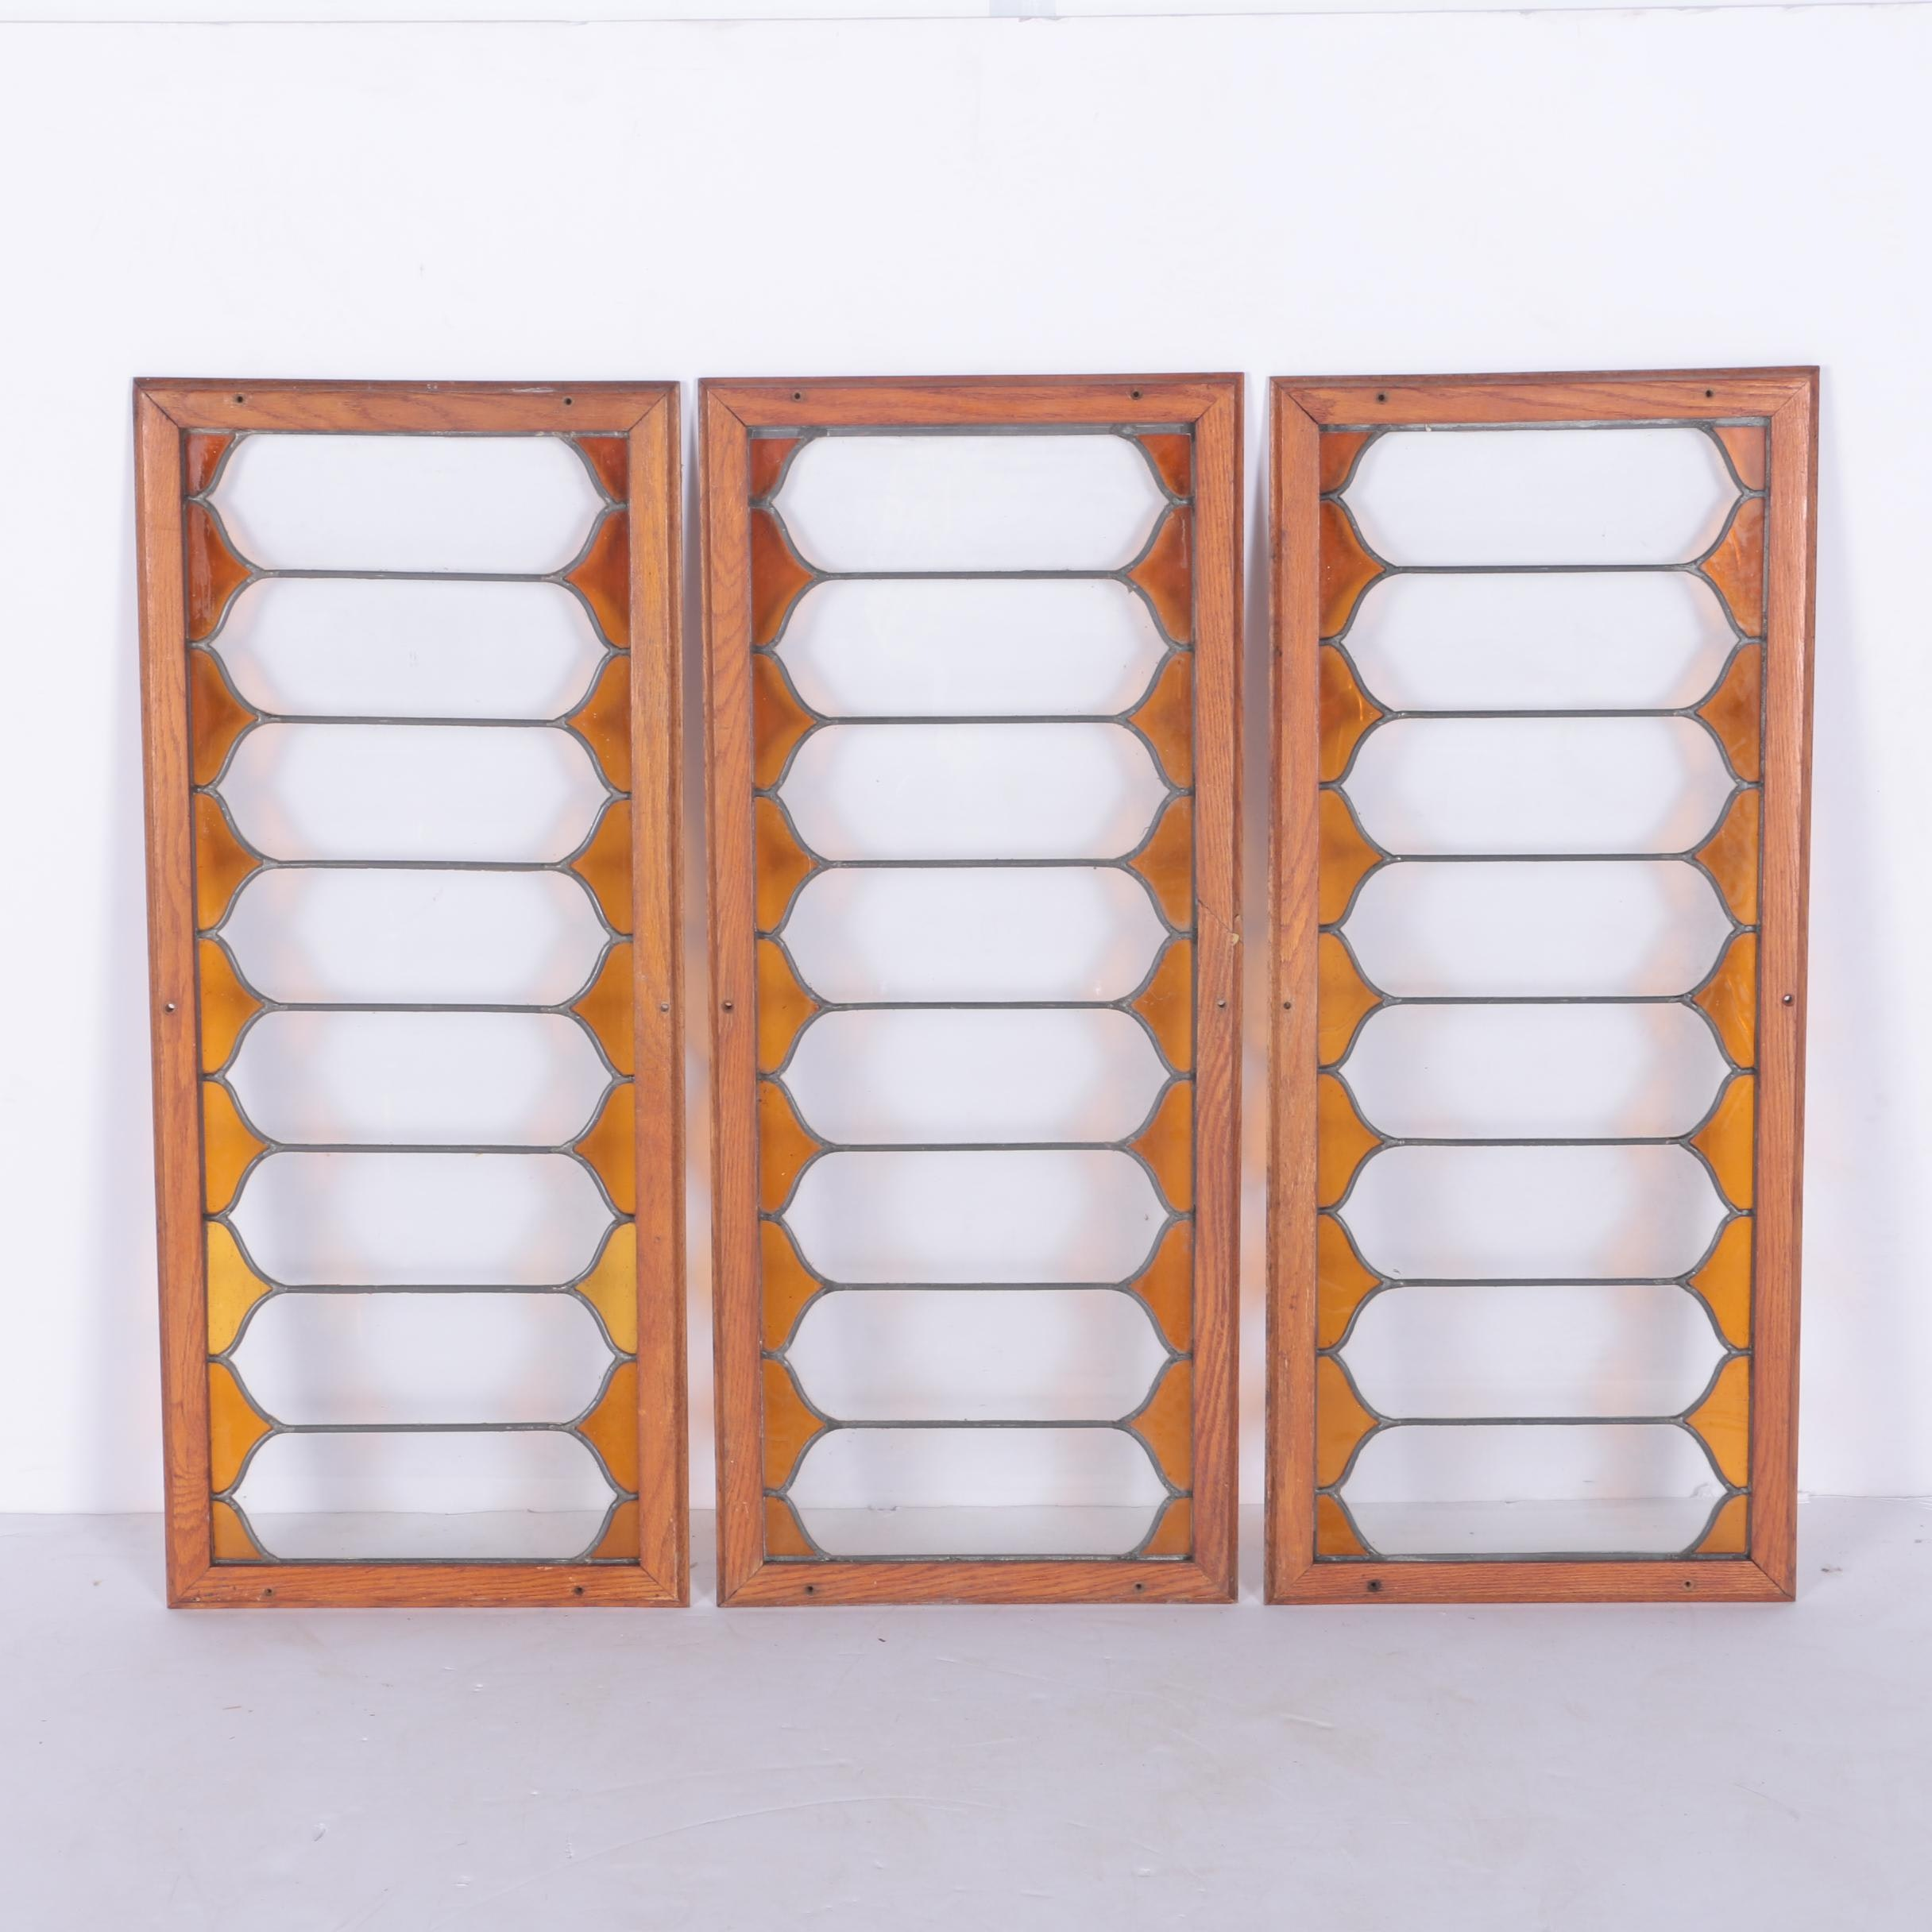 Wood Framed Windows with Colored Glass